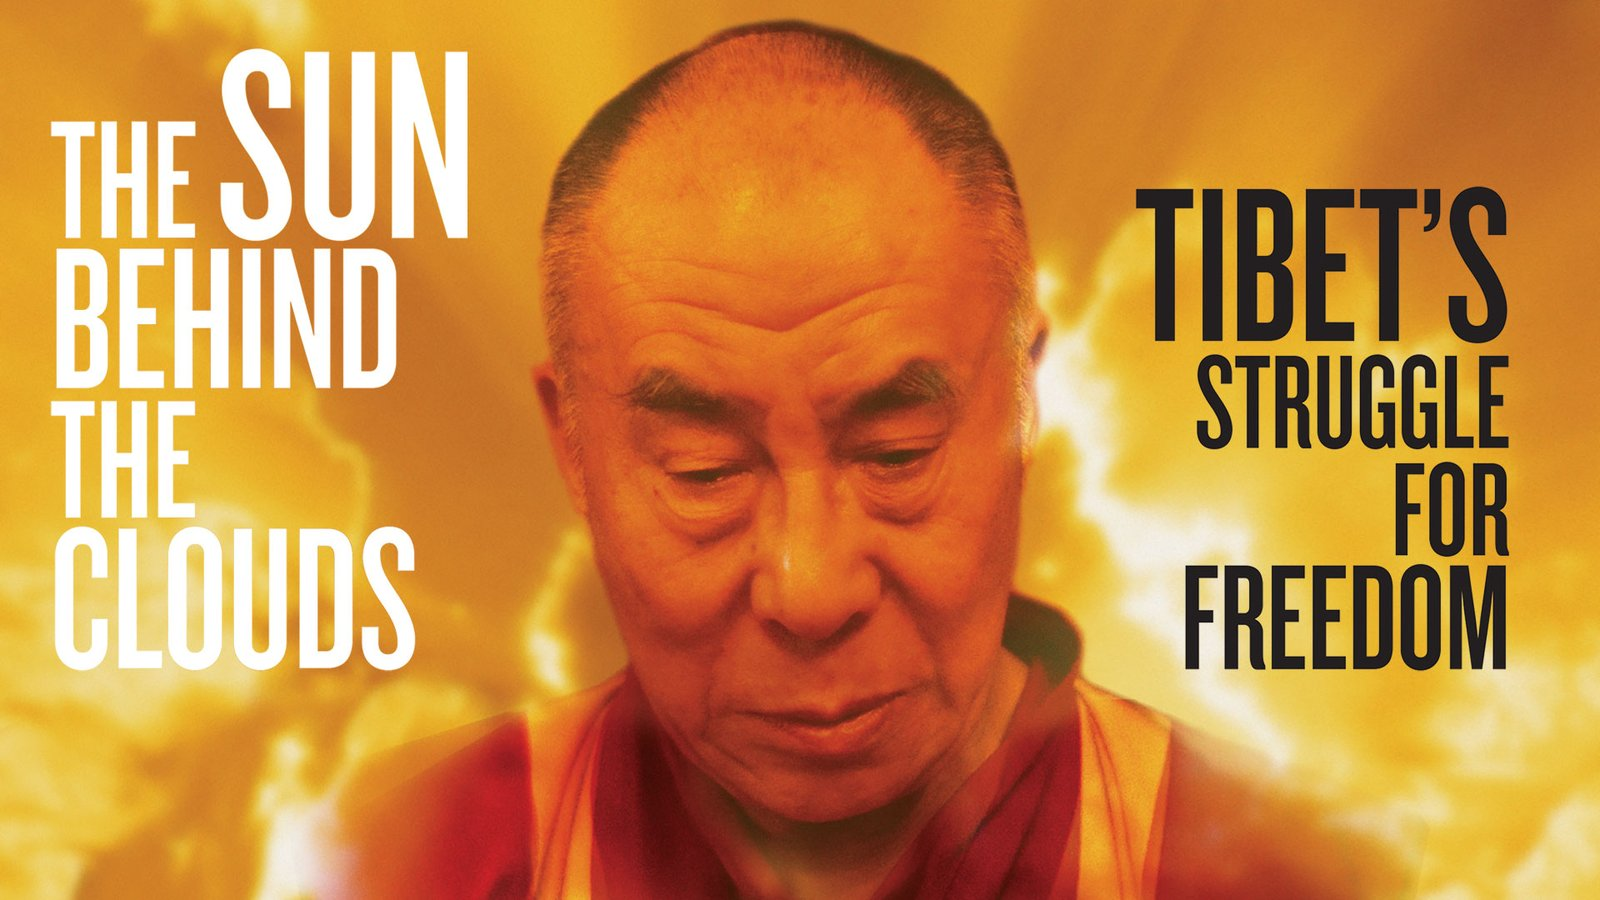 The Sun Behind the Clouds - Tibet's Struggle for Freedom